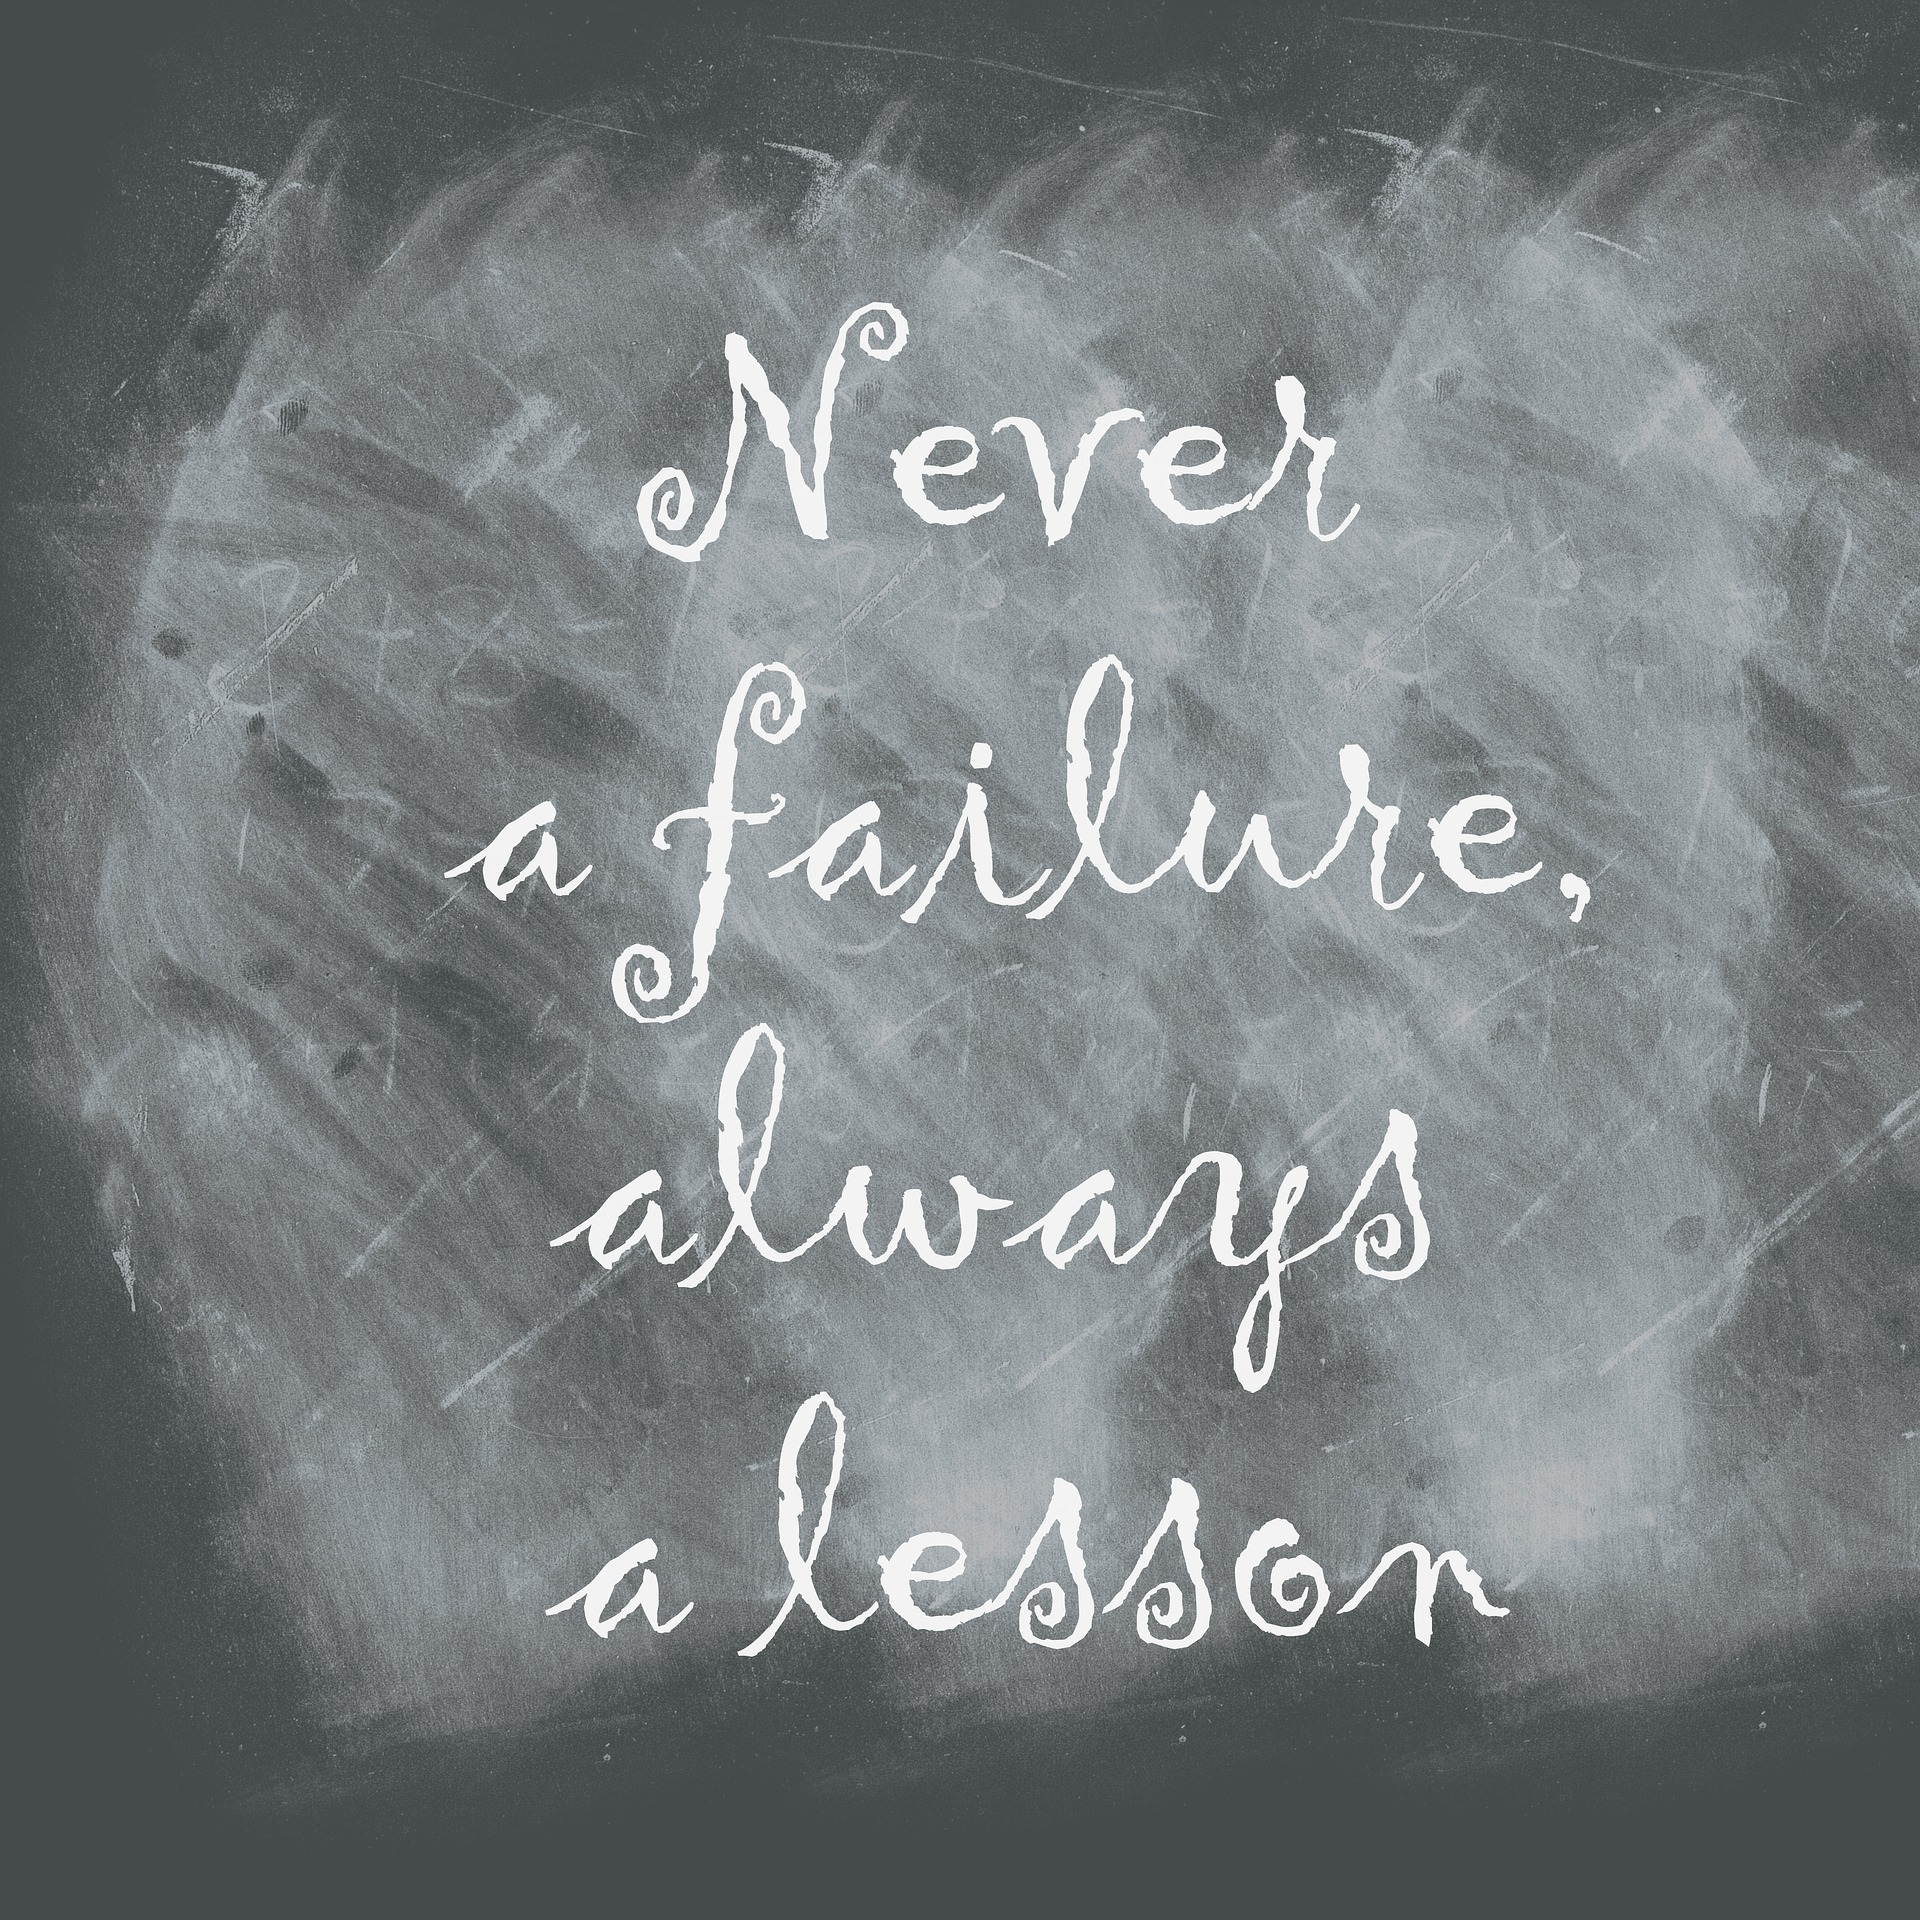 Failure and mistakes